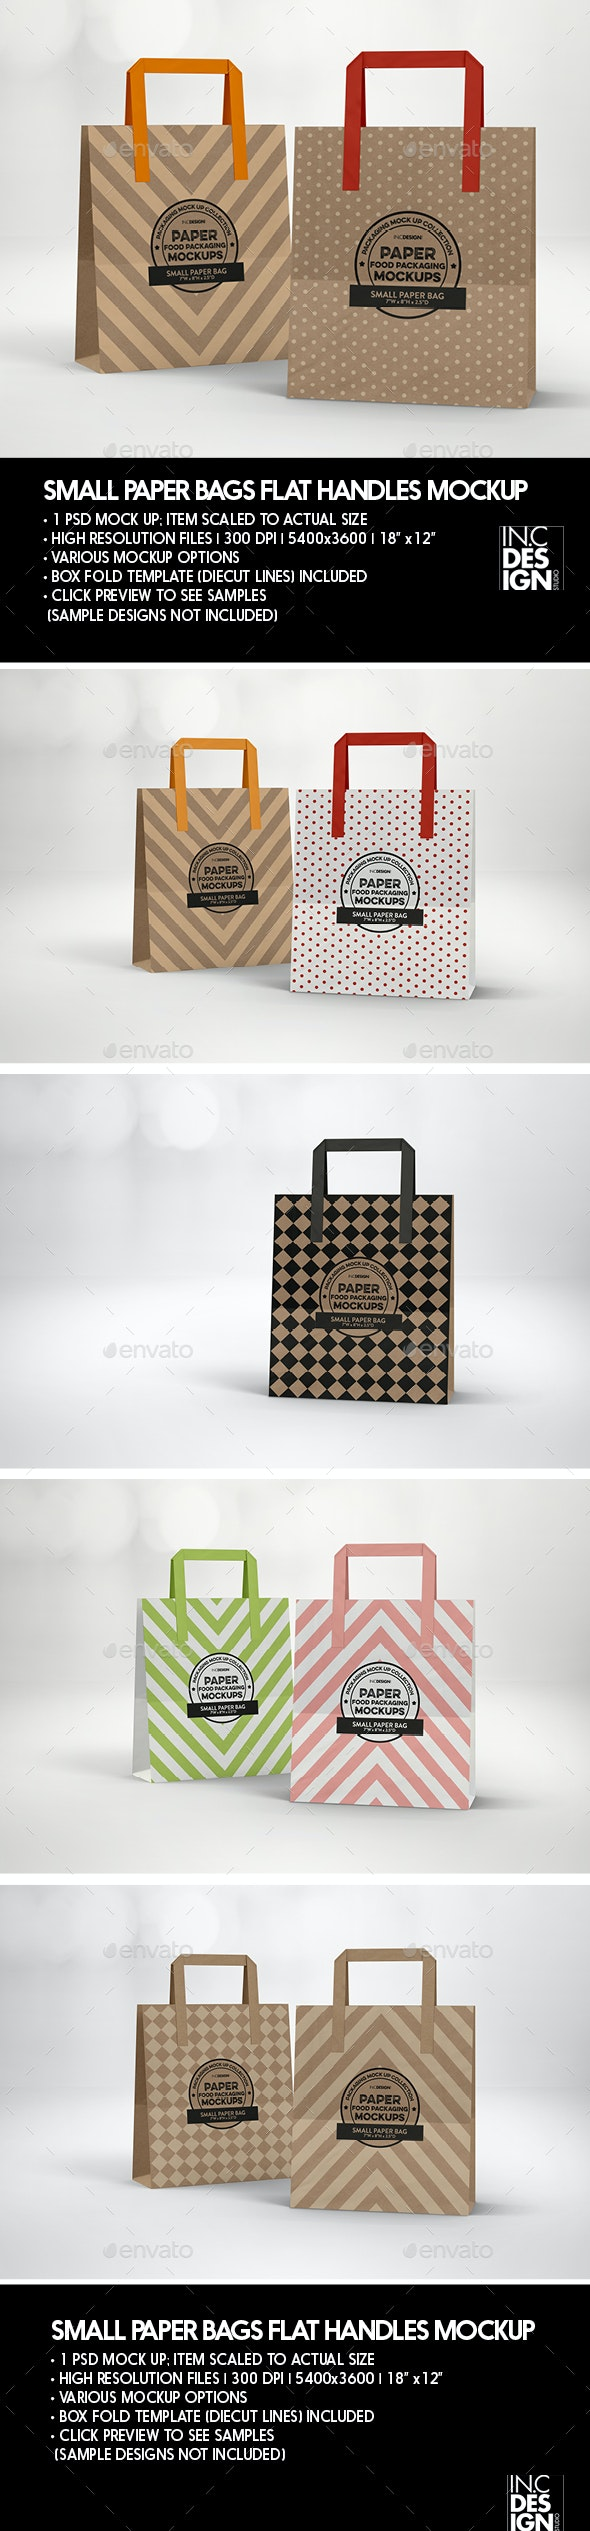 SMALL Paper Bag with Flat Handles Packaging Mockup - Product Mock-Ups Graphics